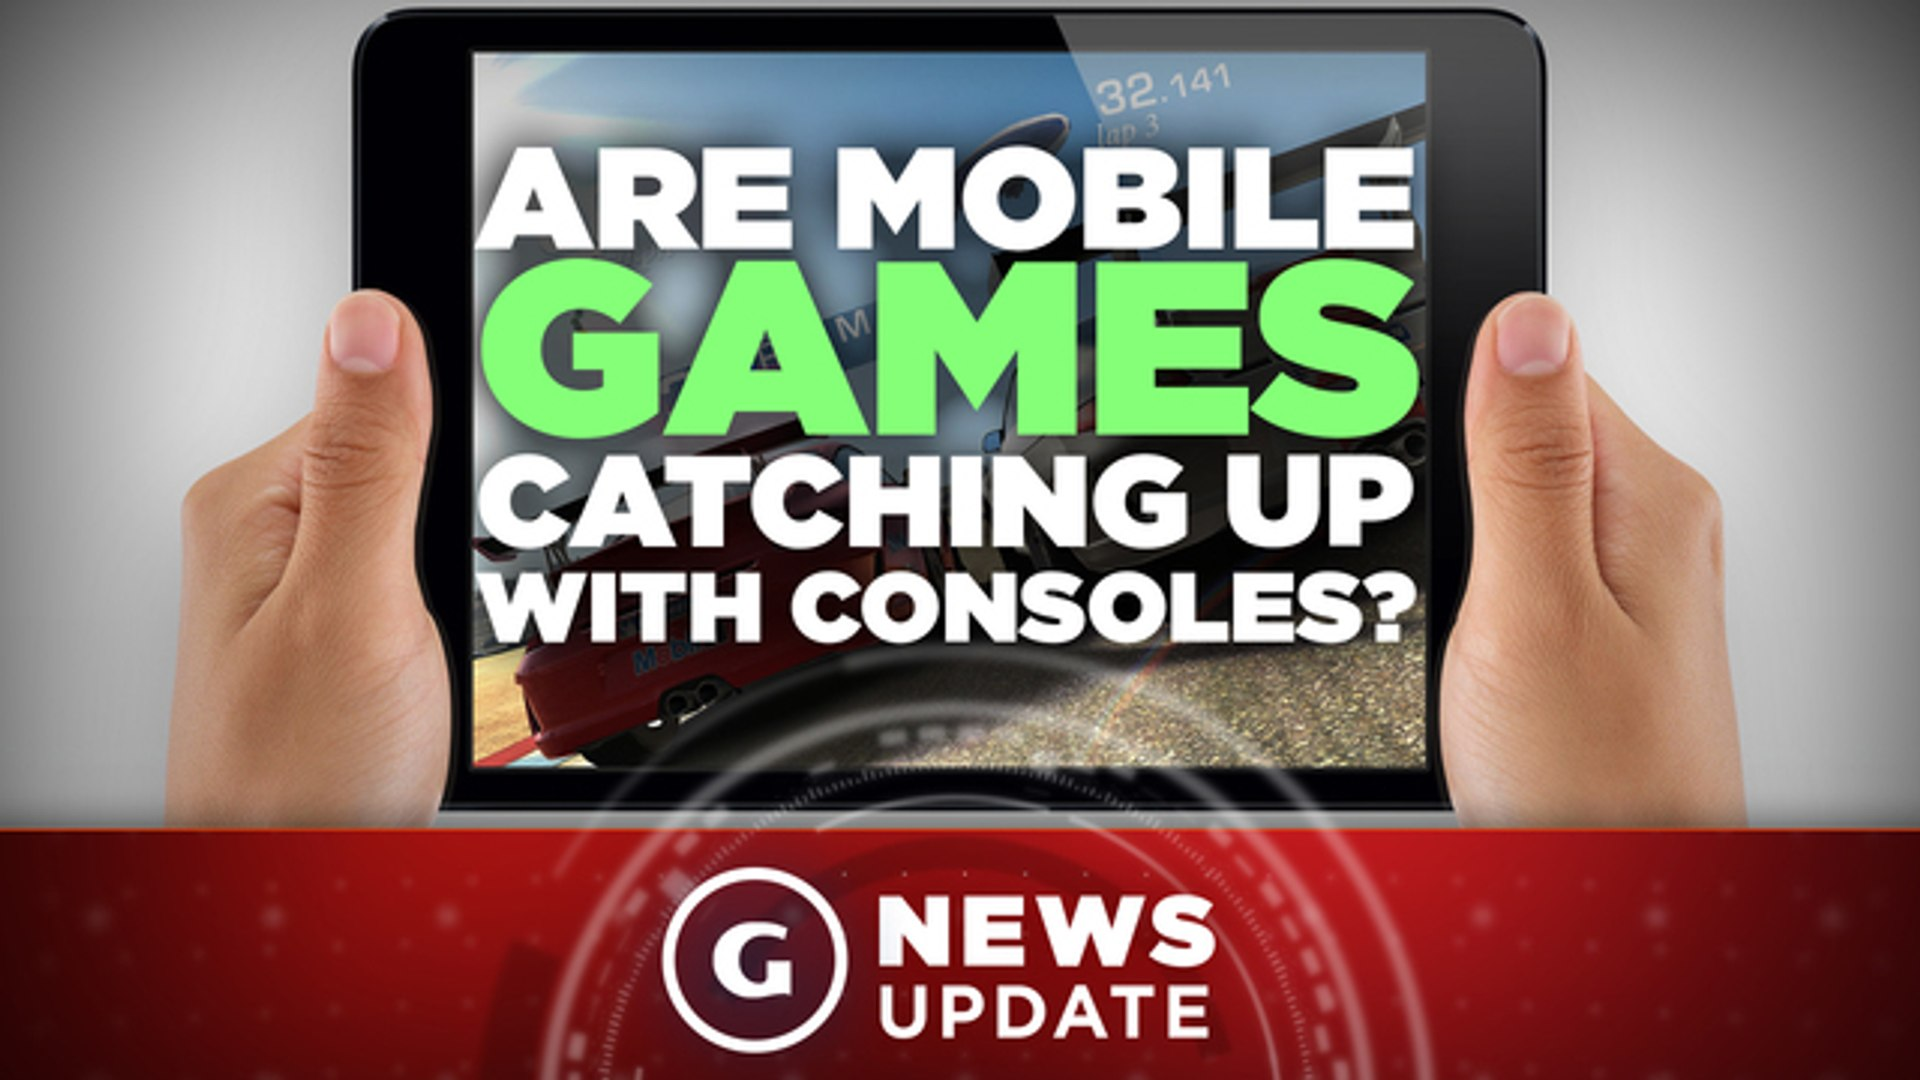 Mobile Game Graphics Will Catch Up to PS4 and Xbox One in 2017 - GS News Update